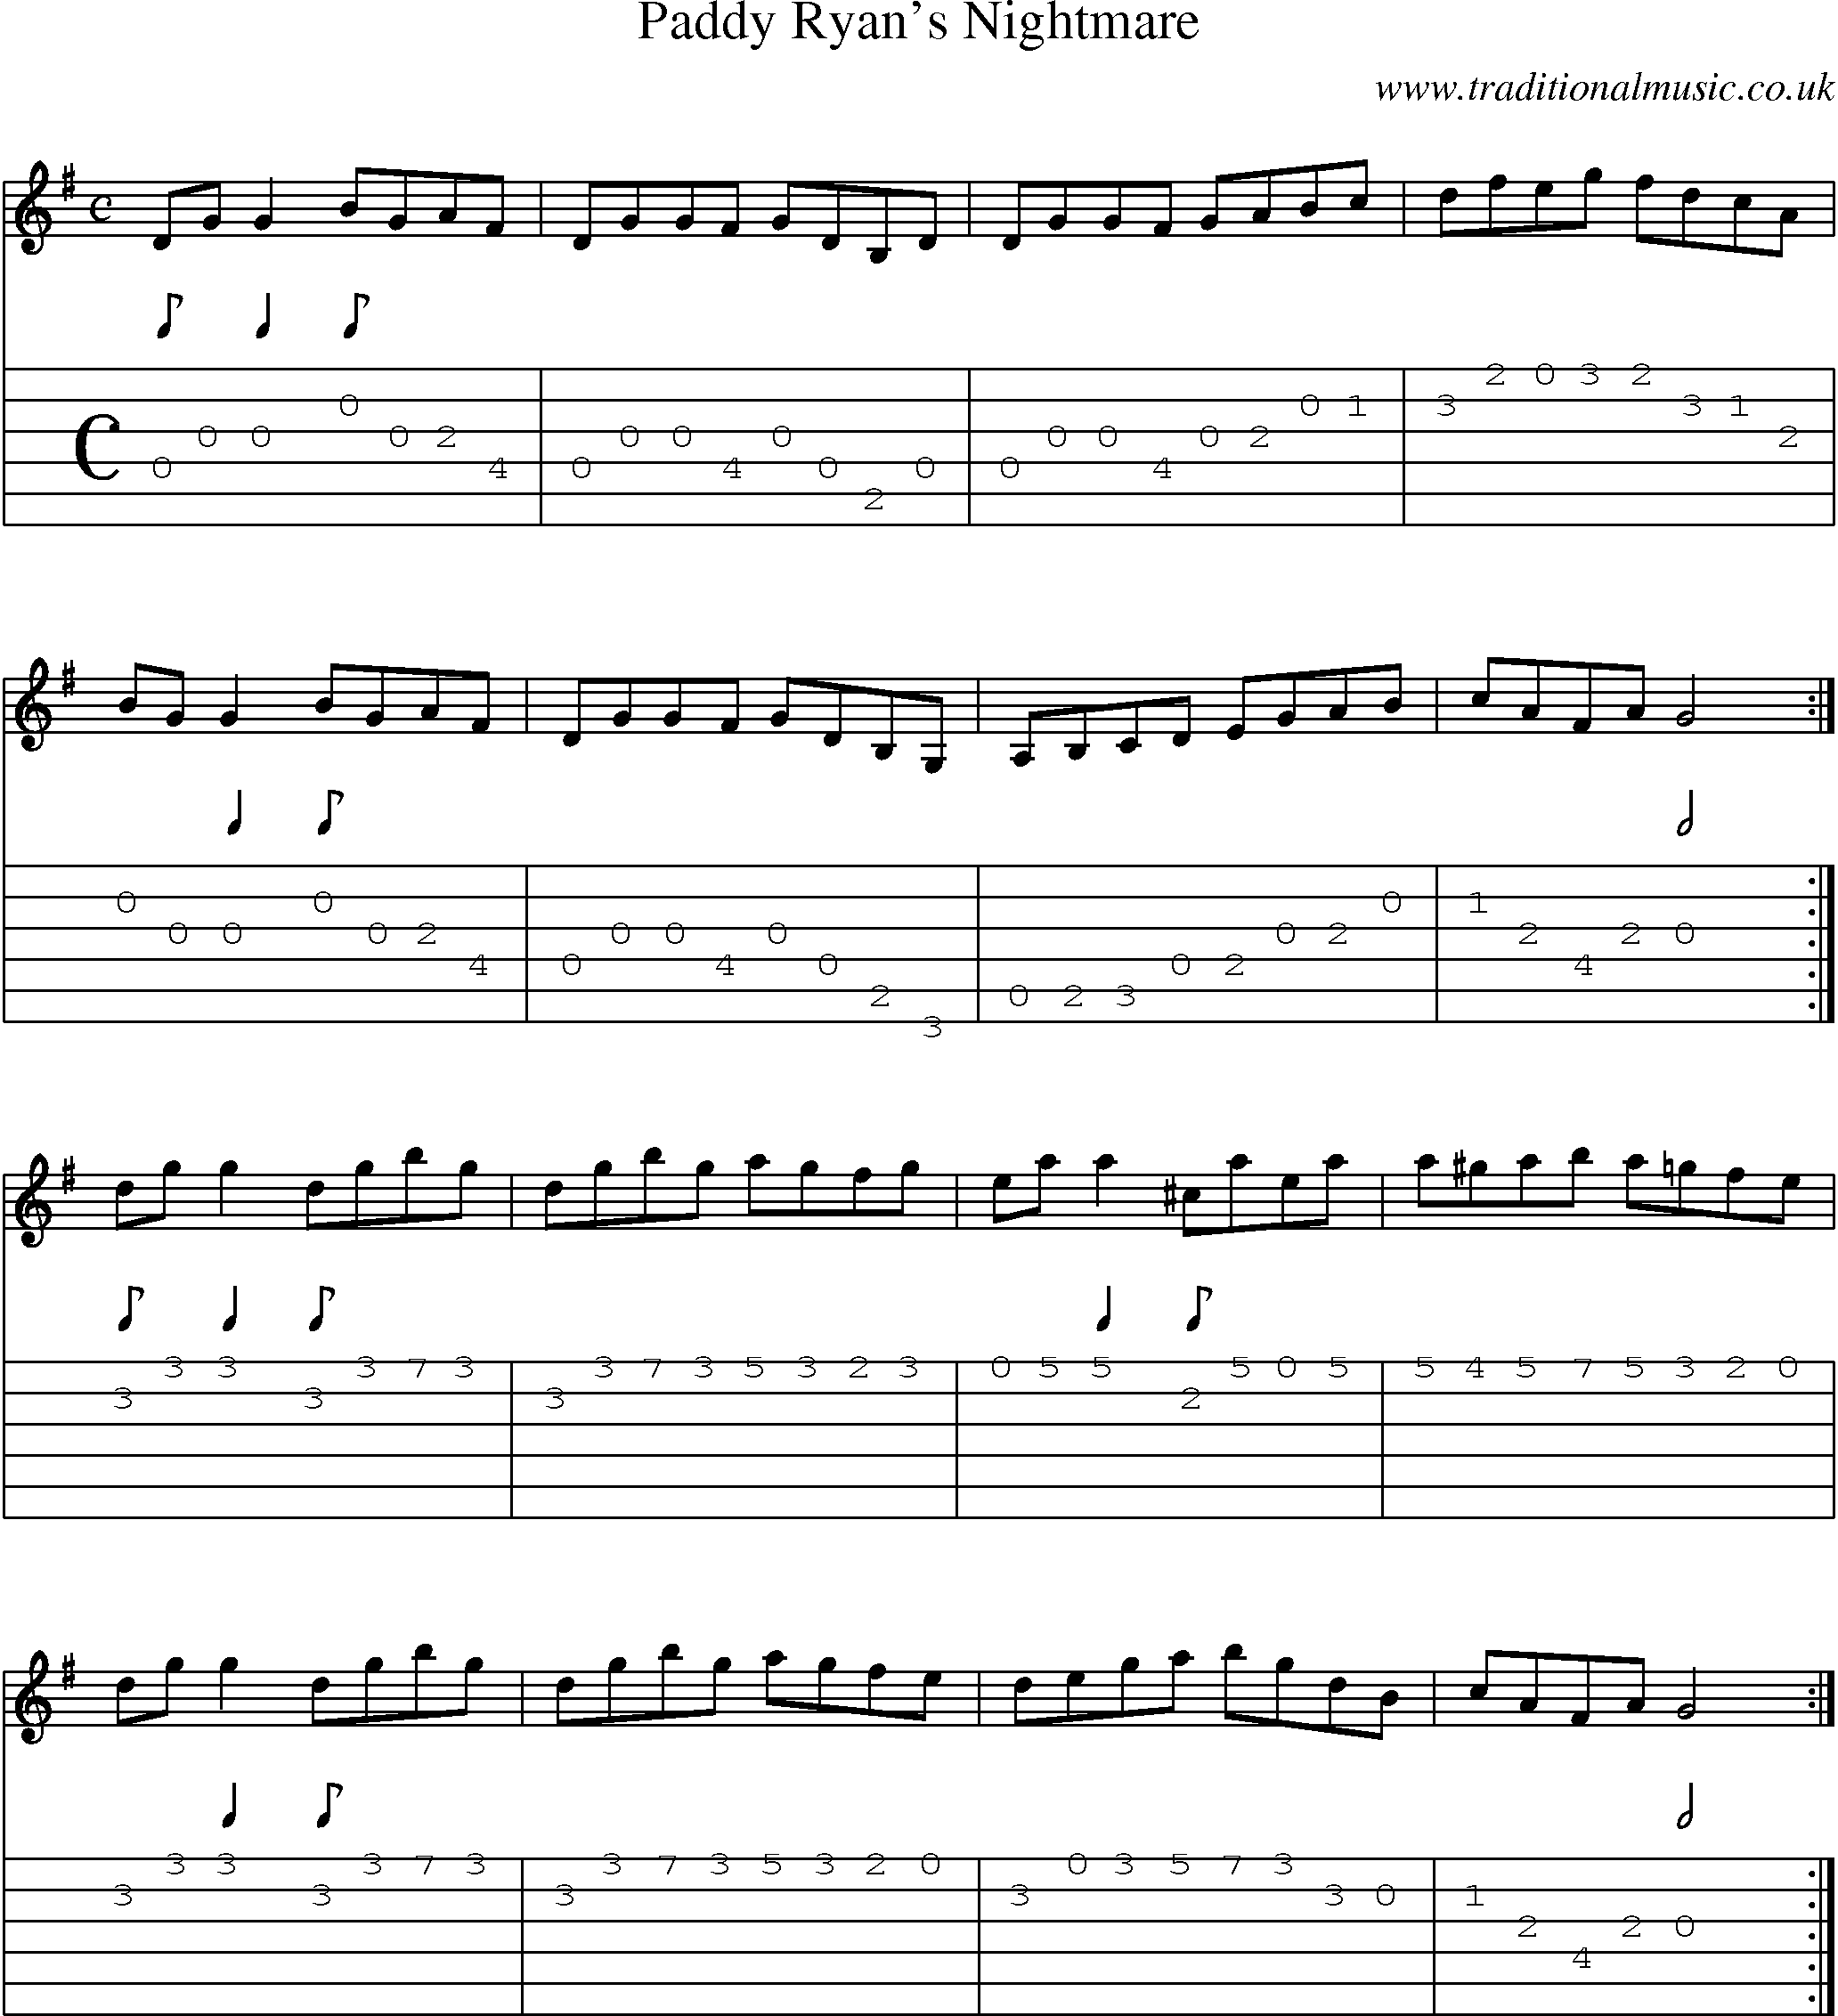 Irish Music Tune: Paddy Ryans Nightmare with Guitar Tab, Sheetmusic, Midi, Mp3 and PDF